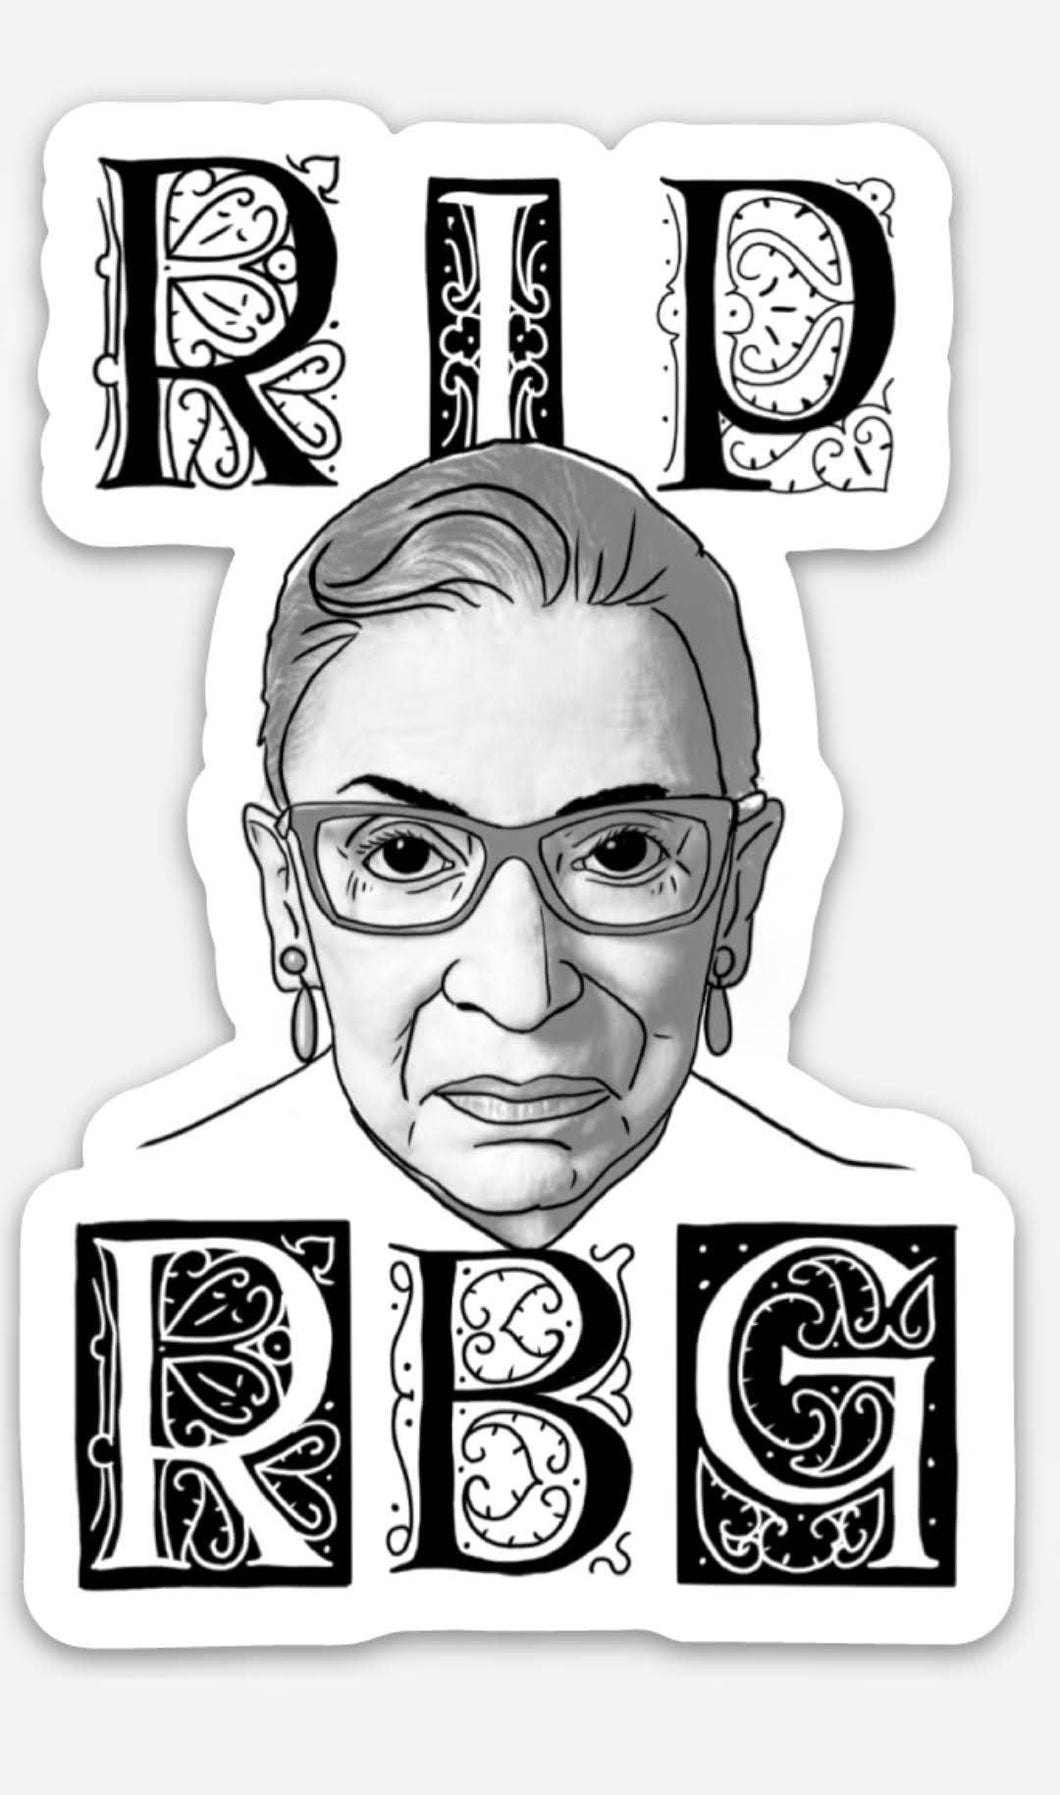 Historical Figures Collection- RIP RBG Sticker